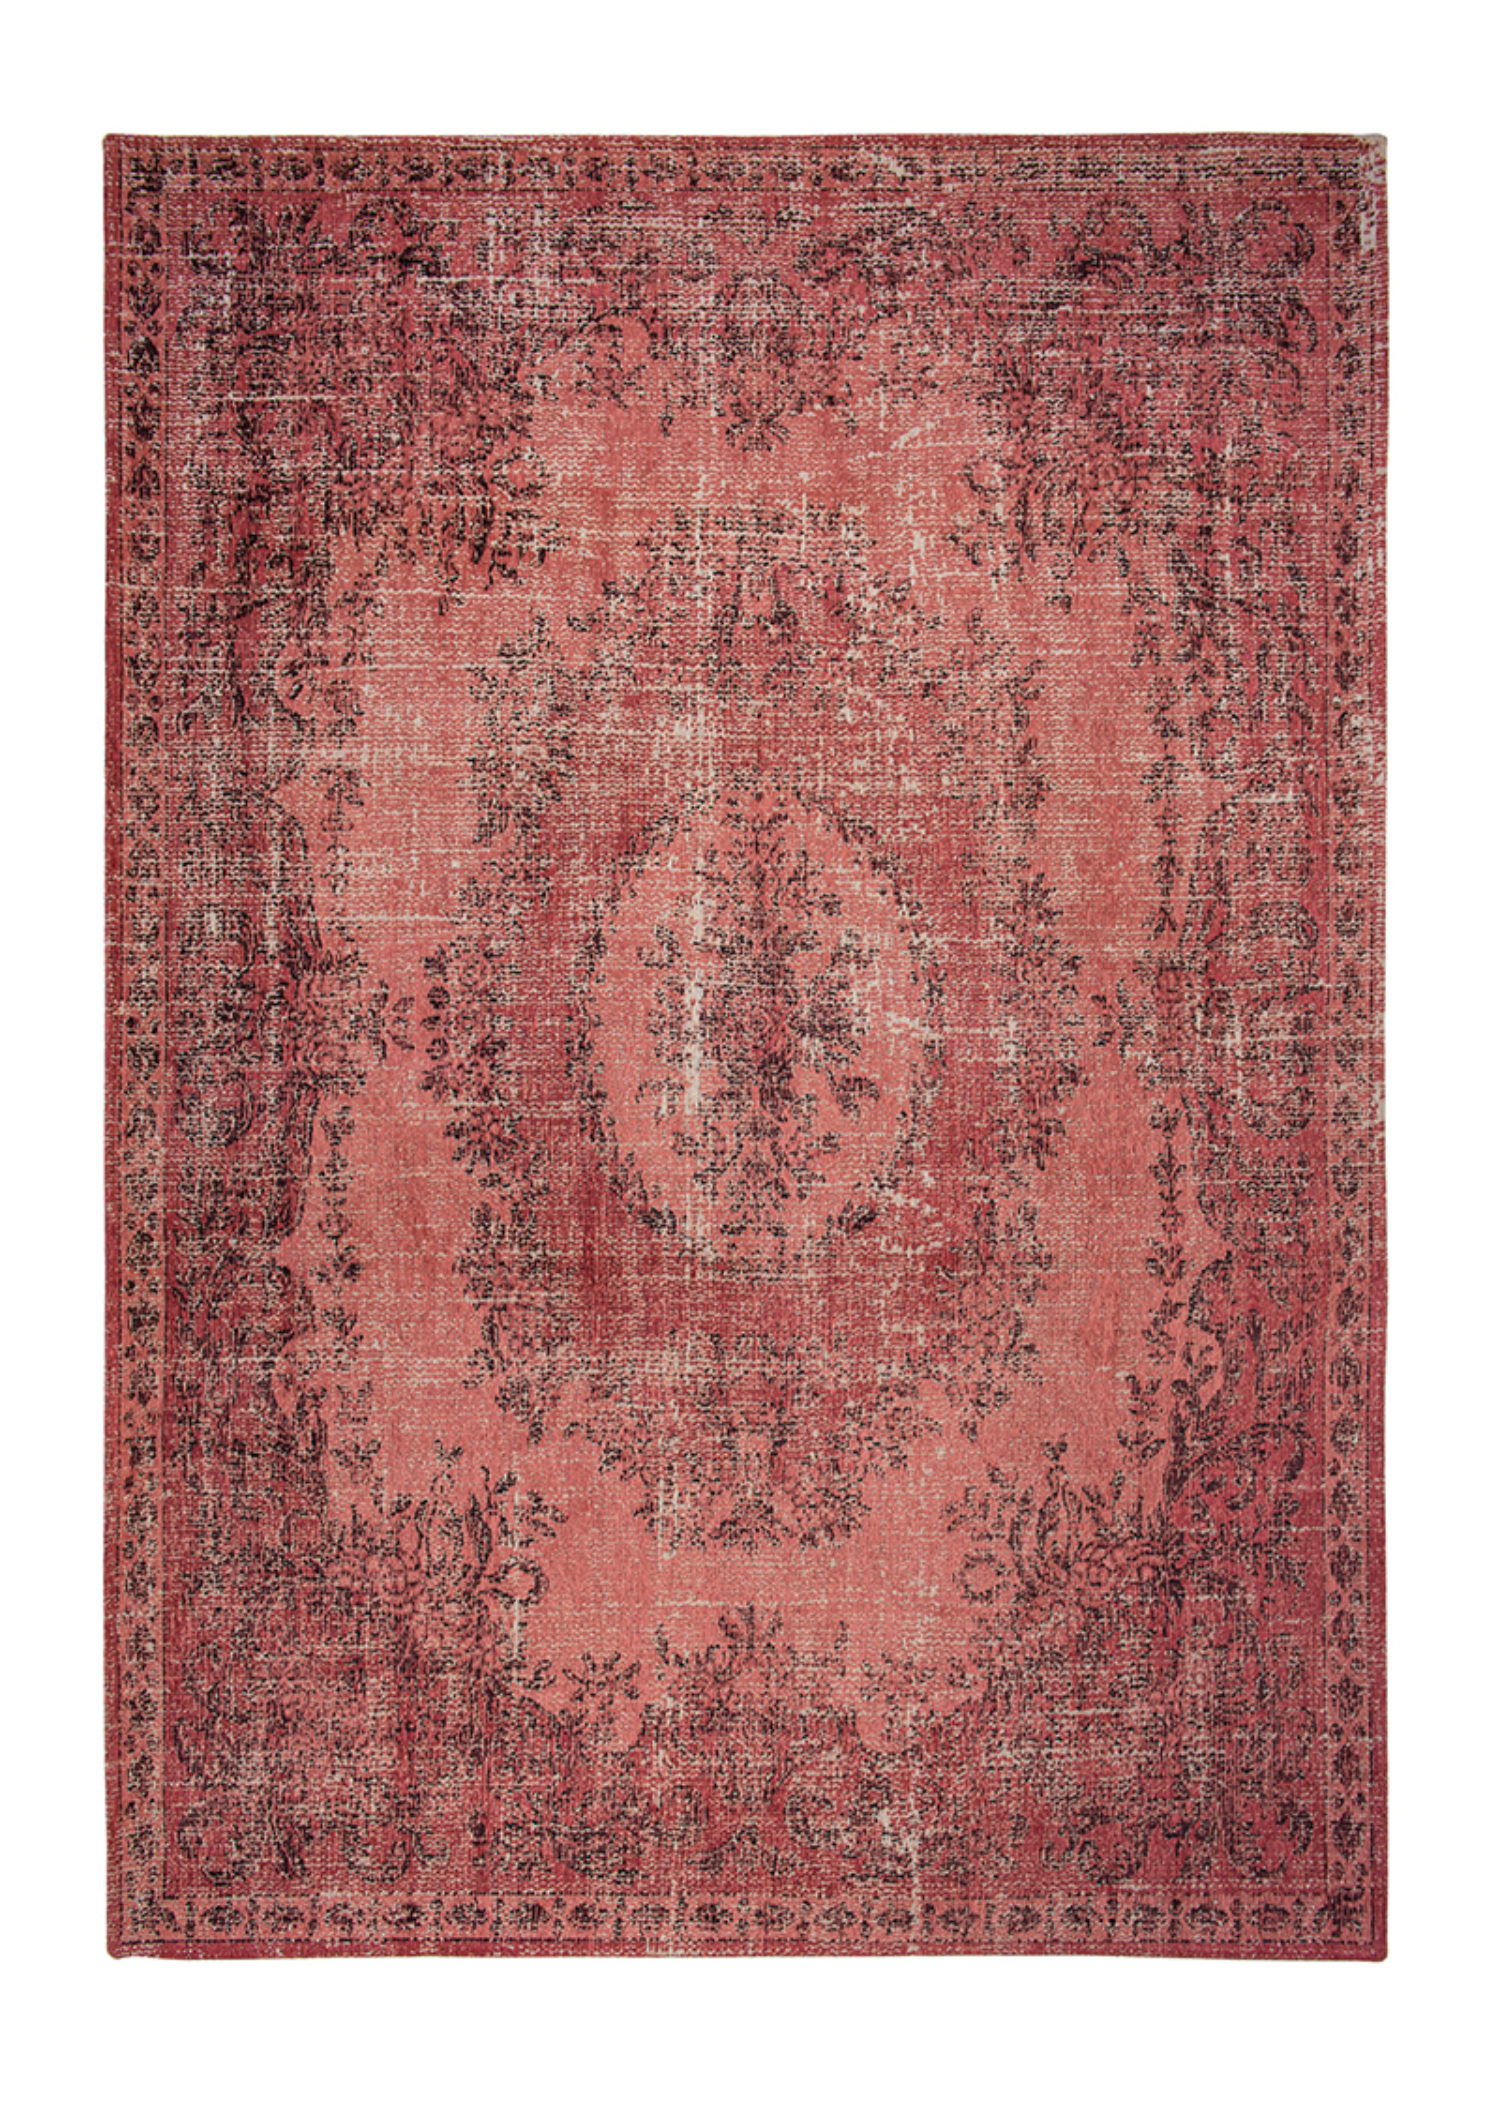 Palazzo Collection - Da Mosto Borgia Red 9141